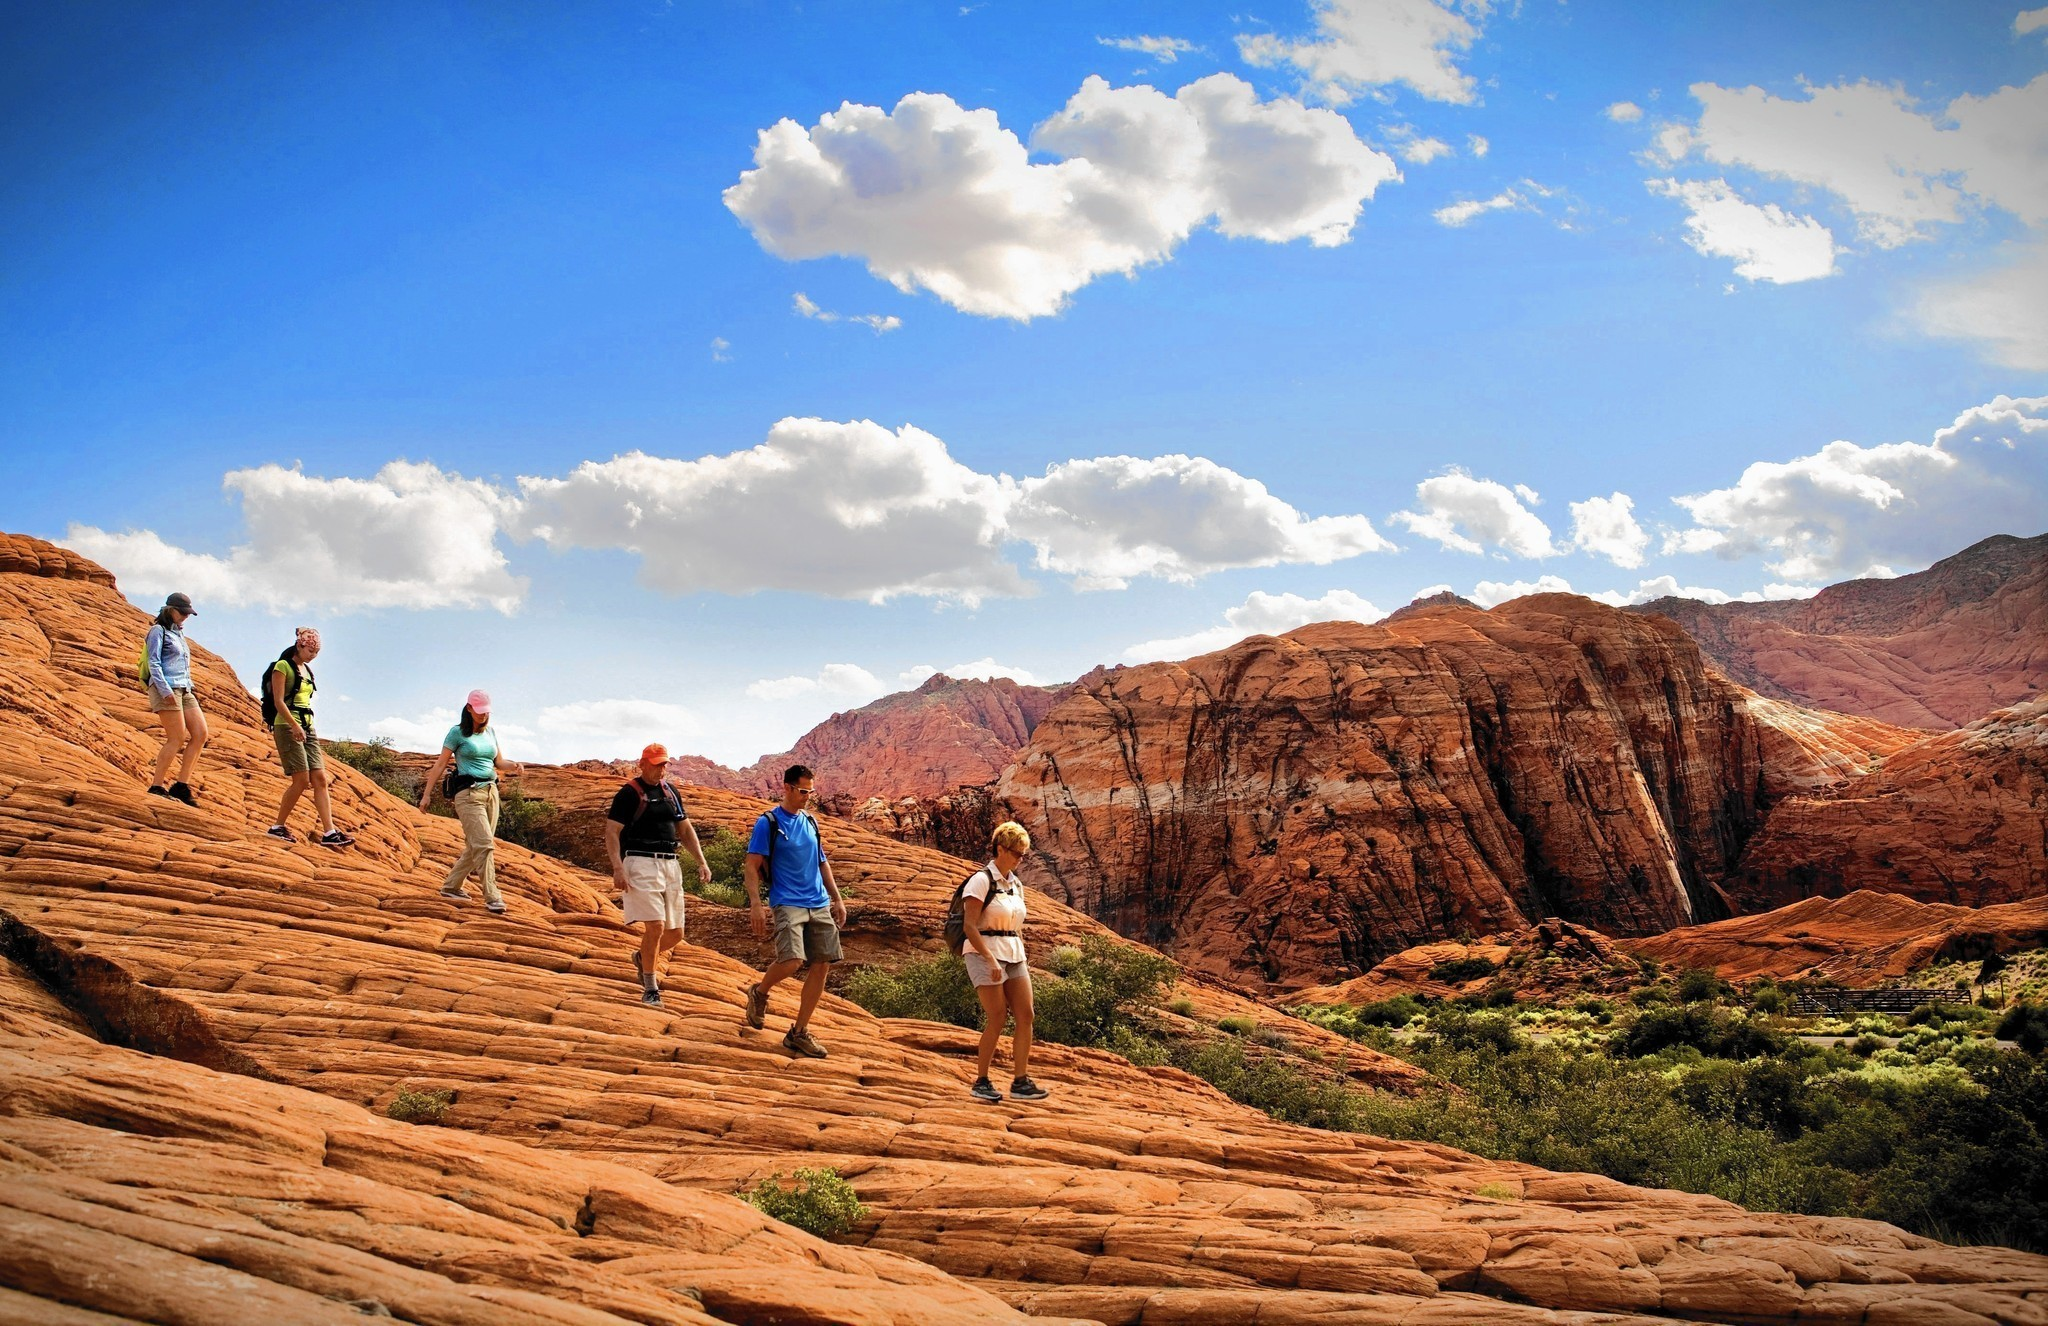 An exhilarating, exhausting time at Utah's Red Mountain ...